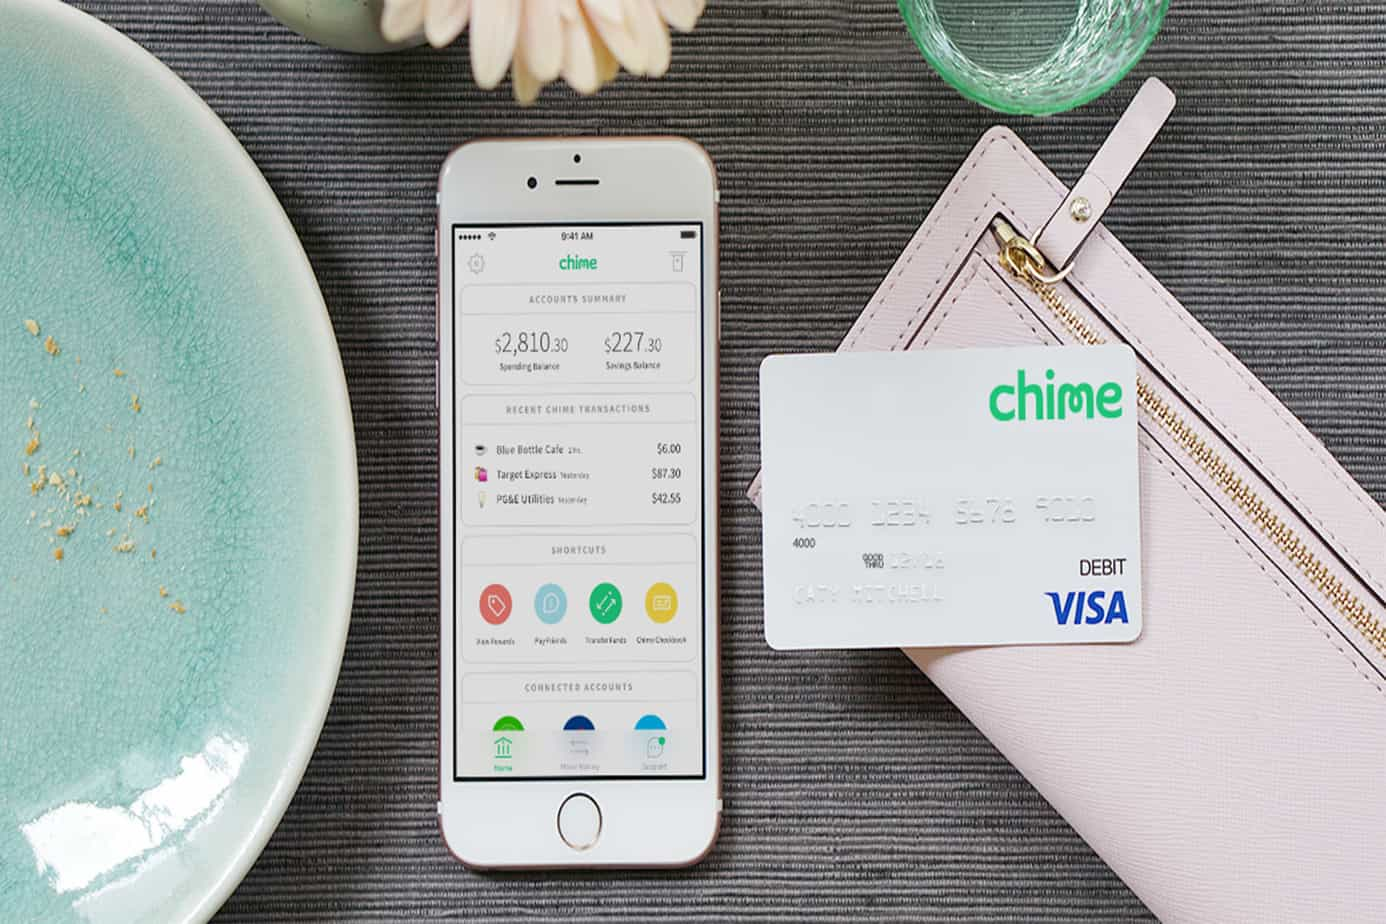 Chime Bank: Get Paid Early and Get Paid to Save